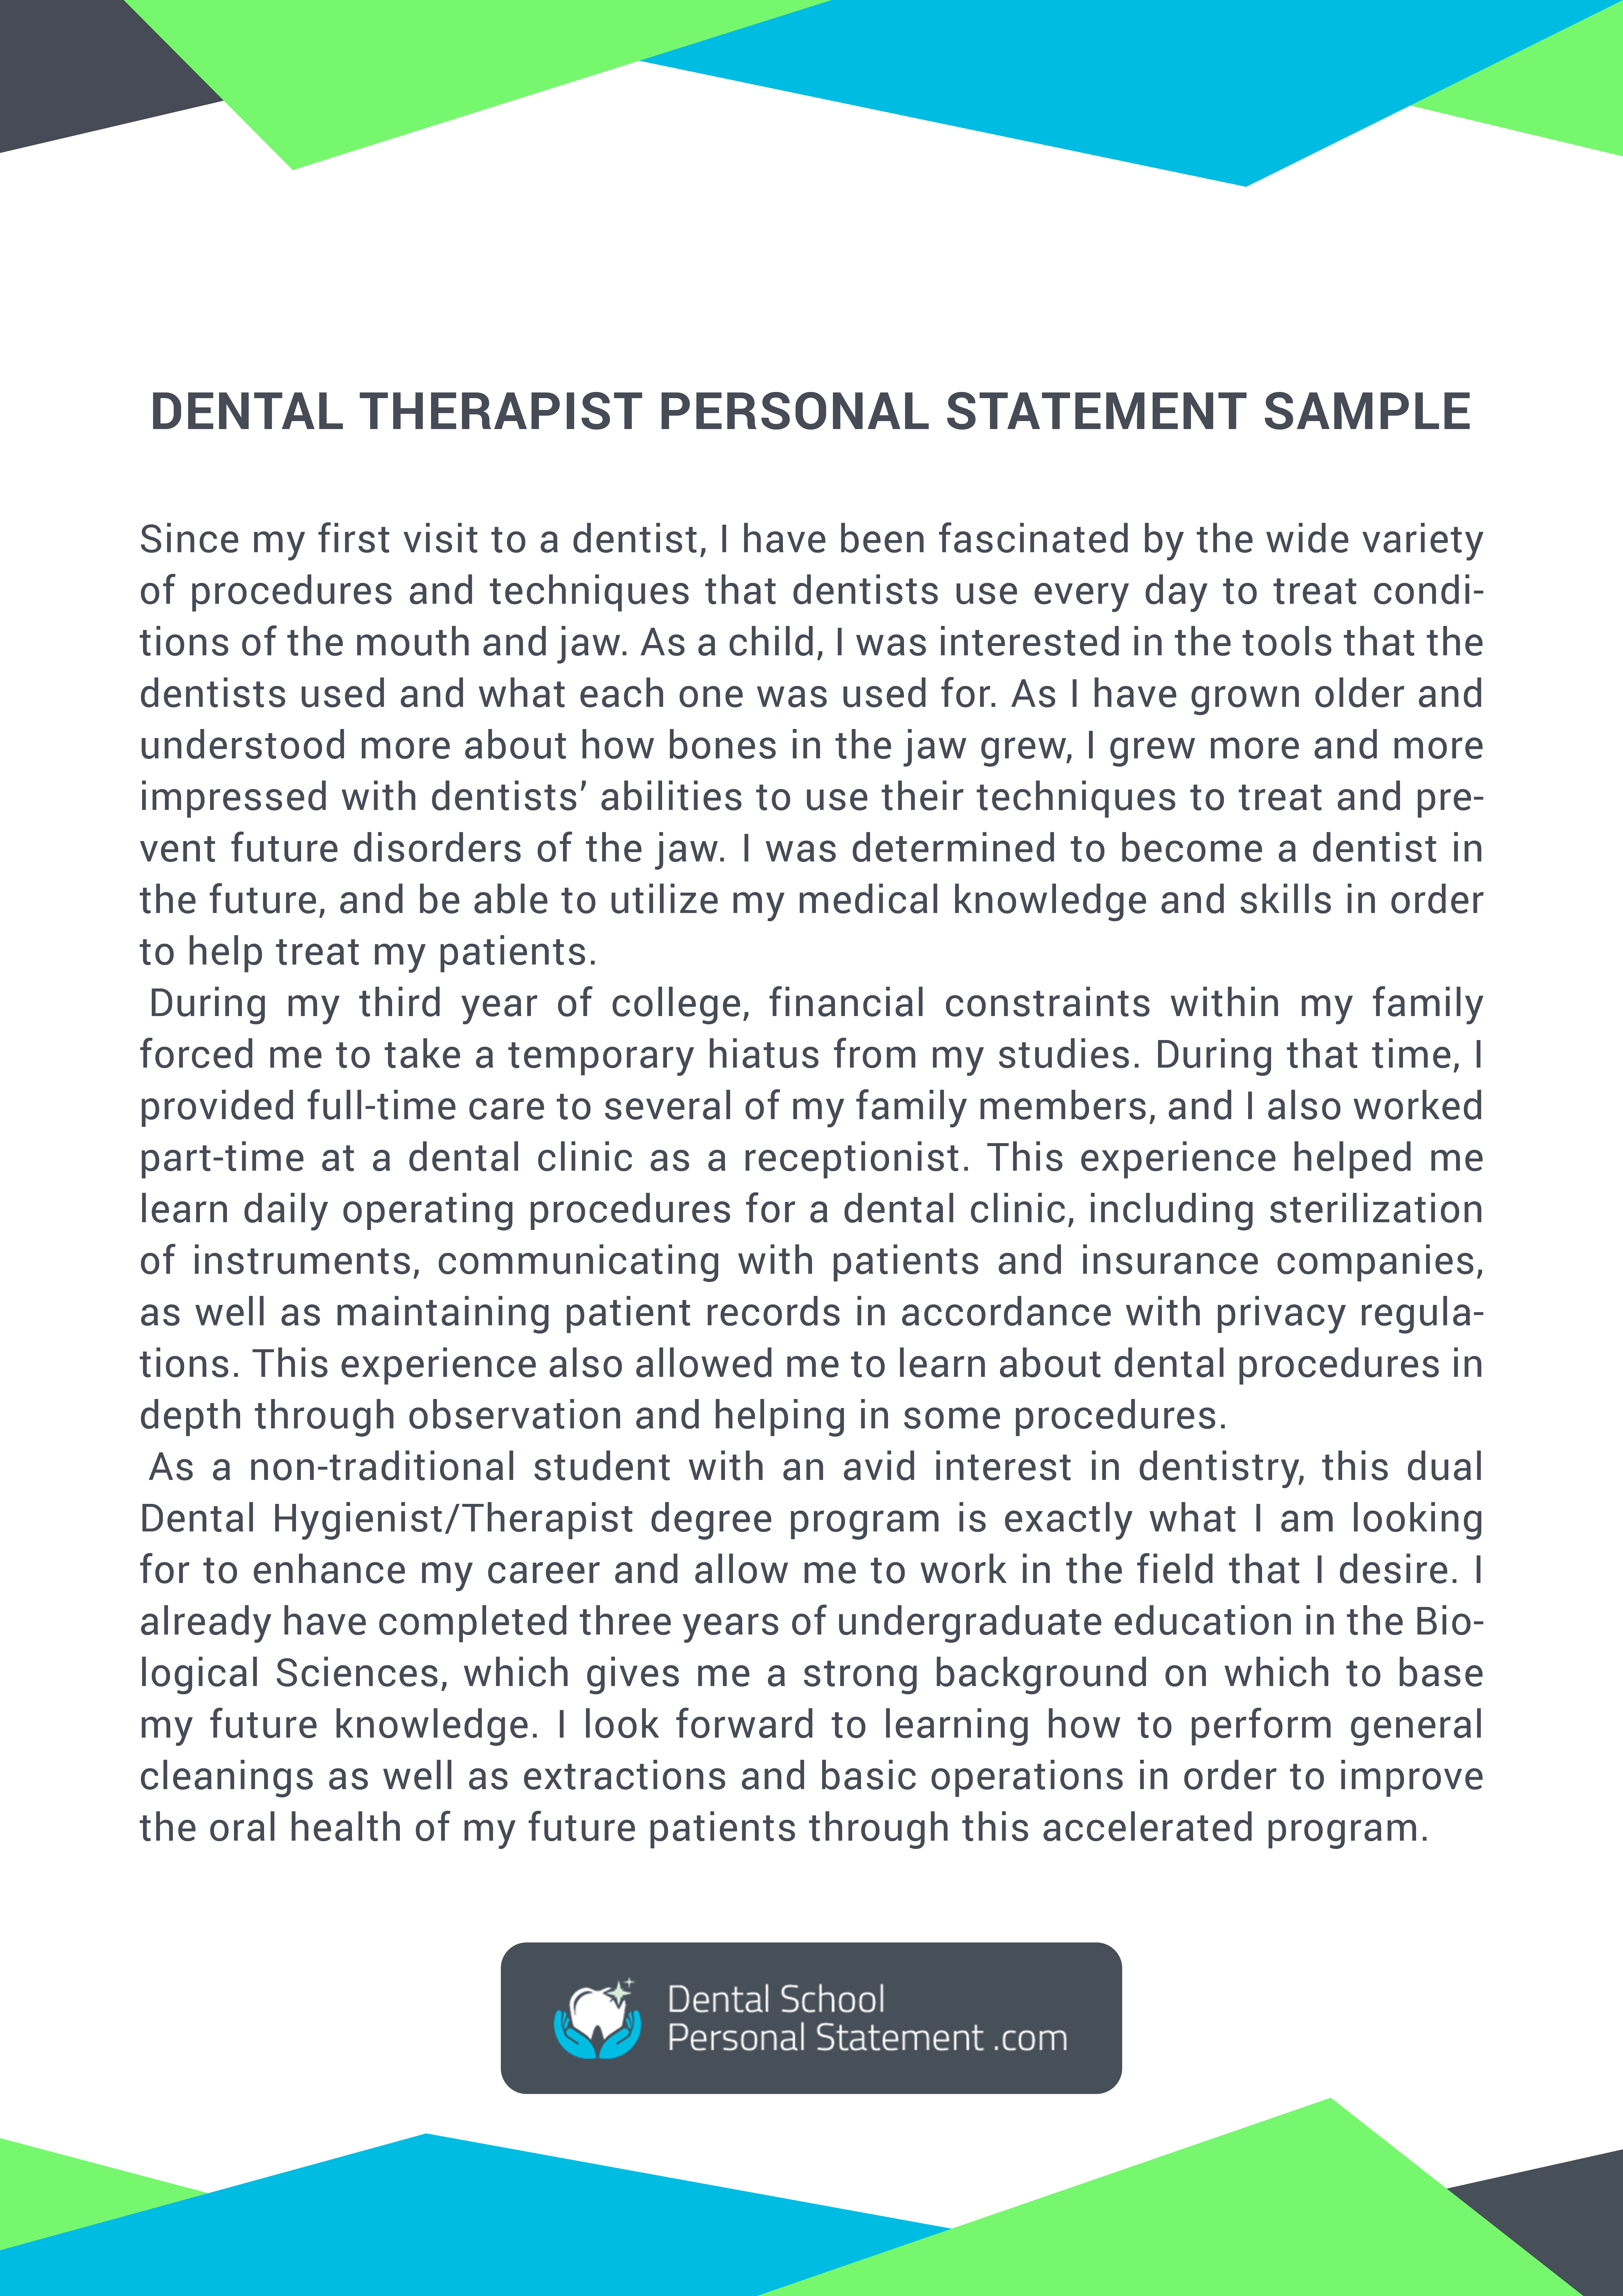 Check Thi Site And Get Help From Dental Hygiene Personal Statement Sample For More Sampl Example Dentistry Tips Tip